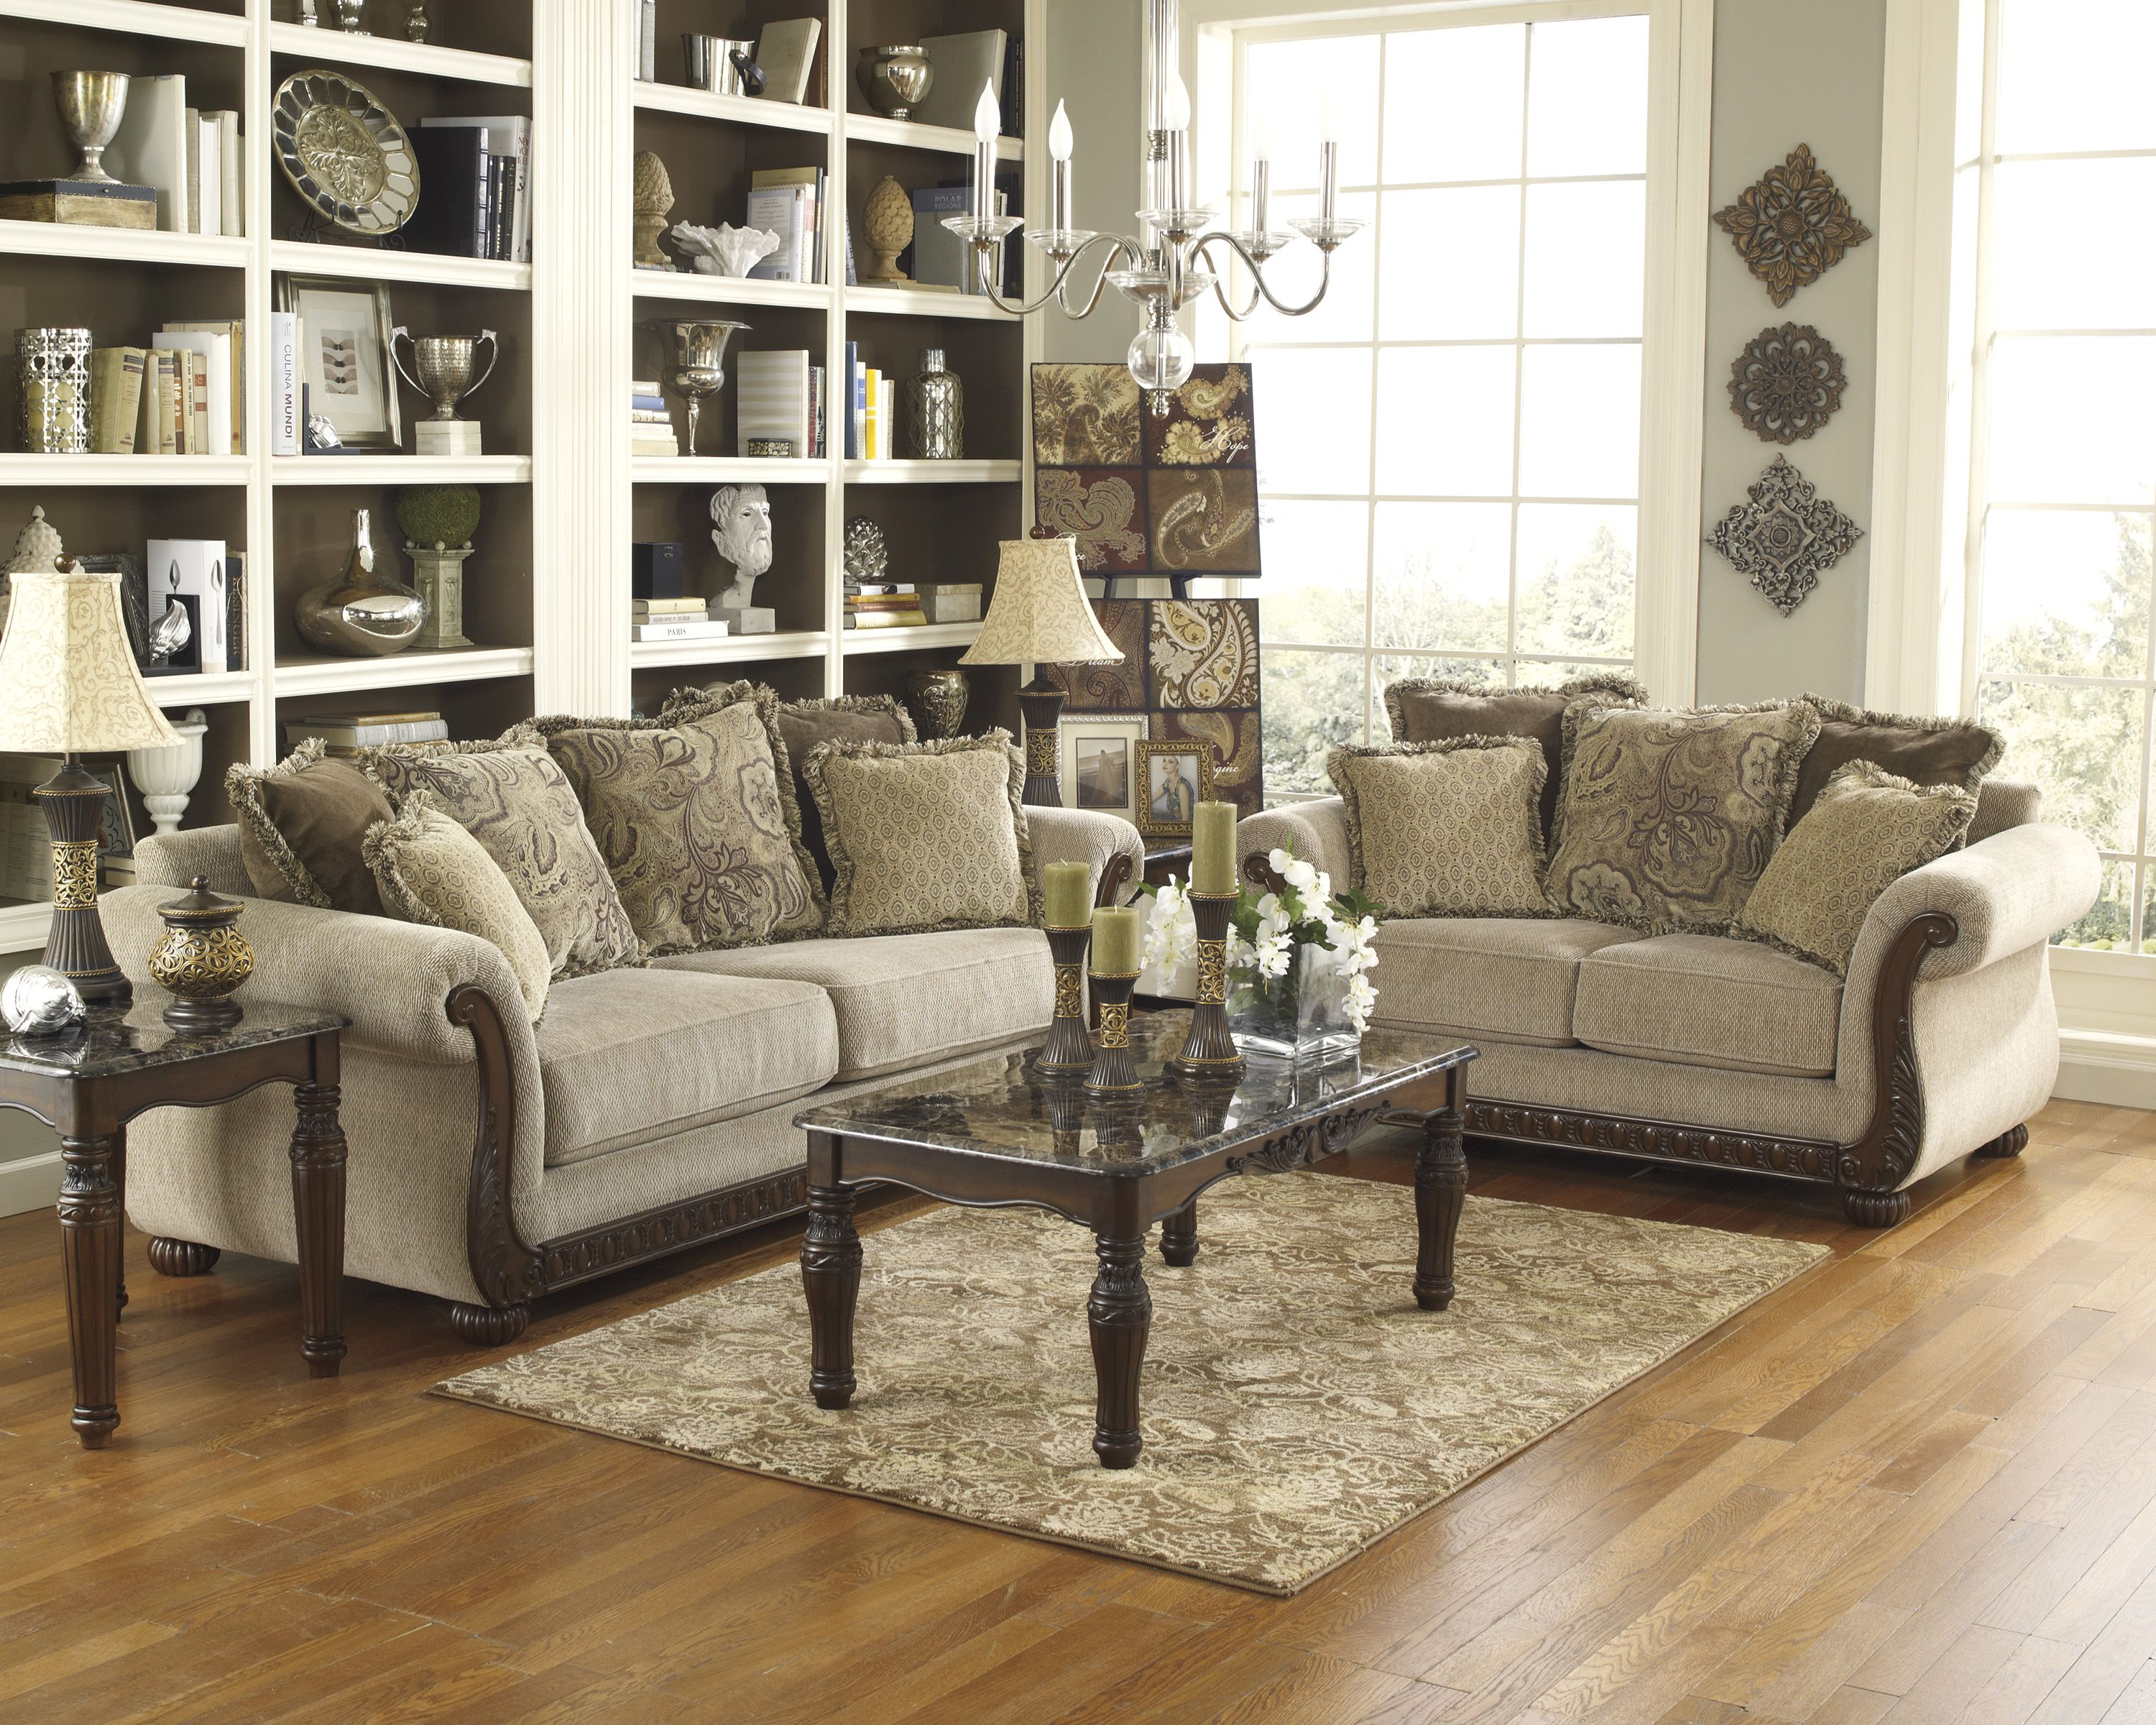 Feel The Ancient Style With Antiques Details Ashley Home Furniture Kuwait Ashley Furniture Living Room Living Room Sets Furniture